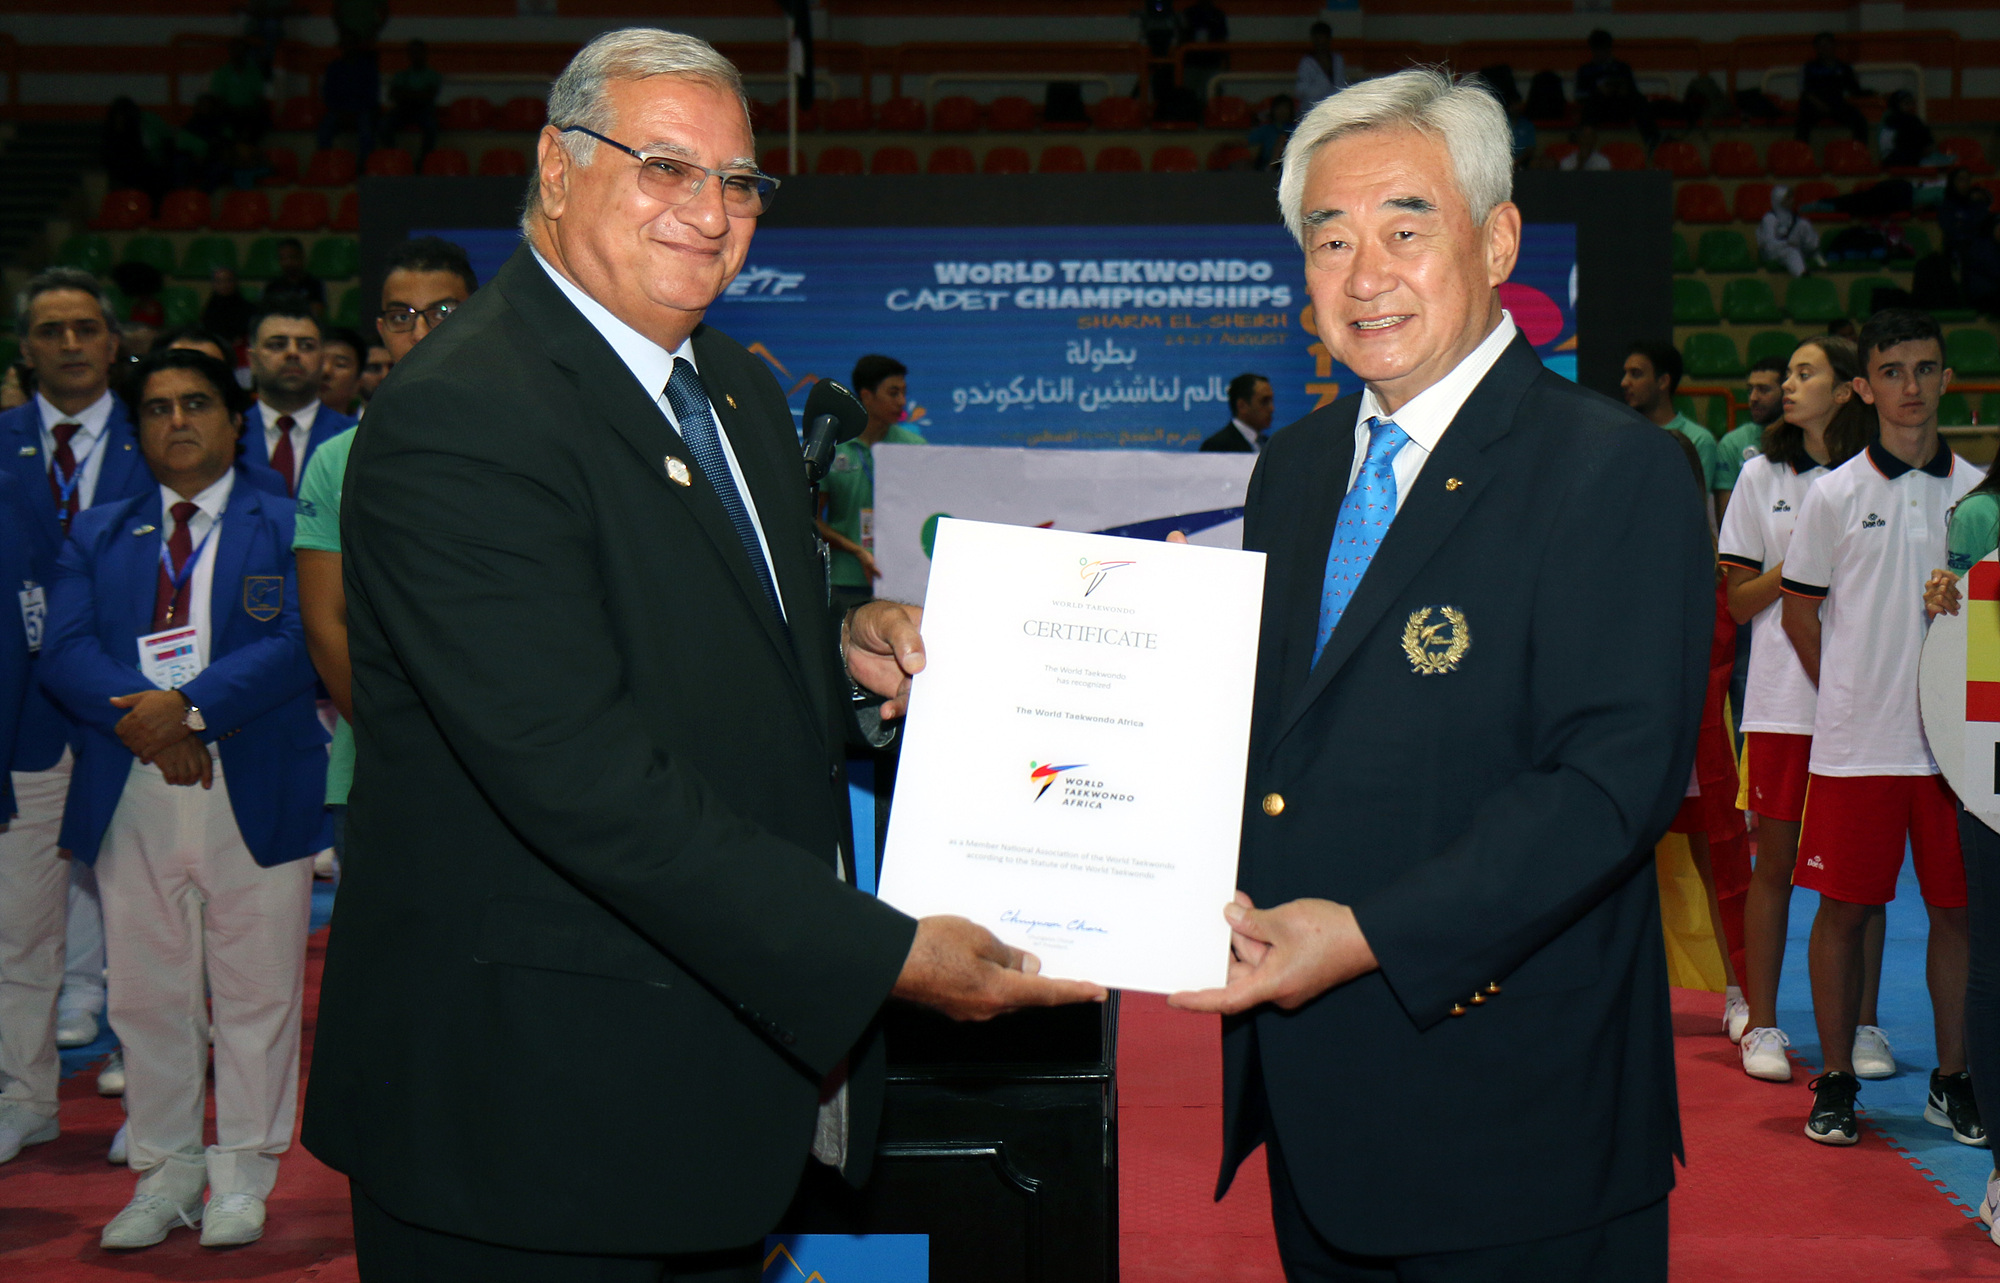 WT President Choue gives a certificate to WTAF President Gen. Ahmed Fouly